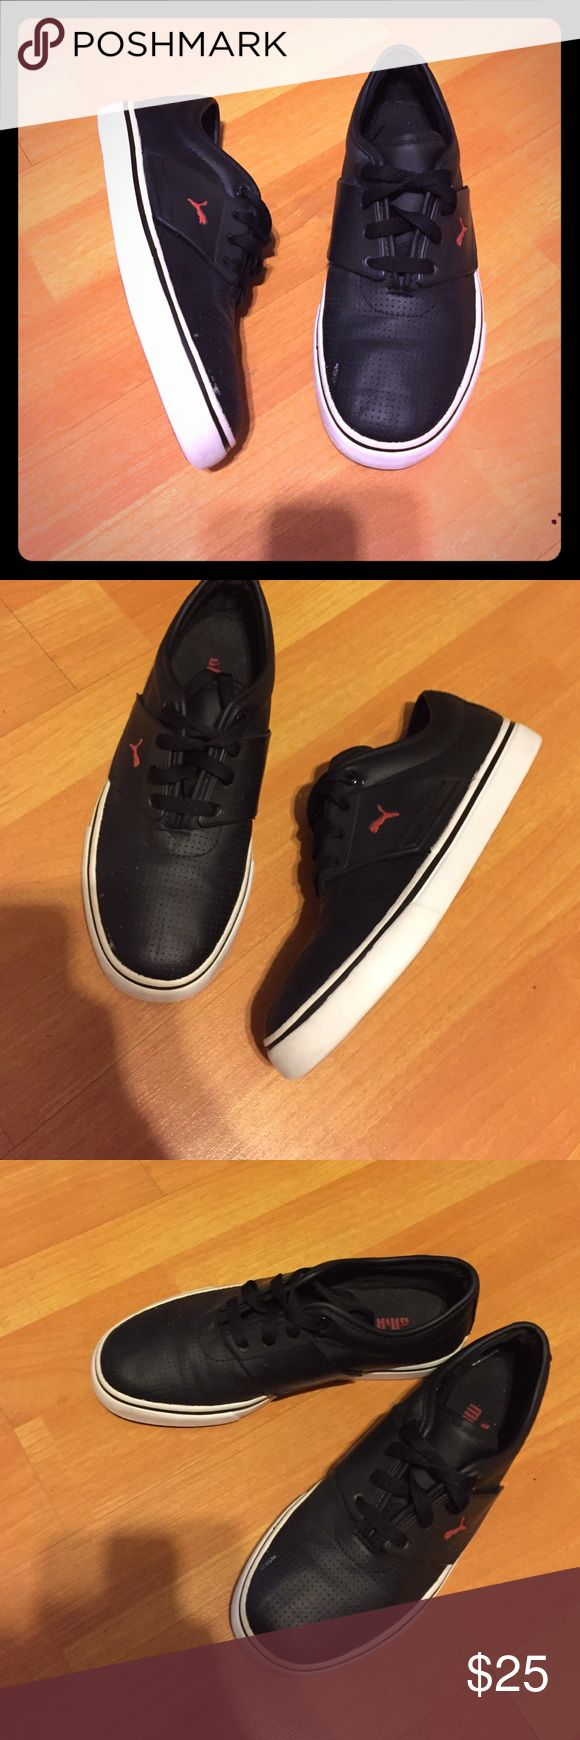 puma sneakers size 5